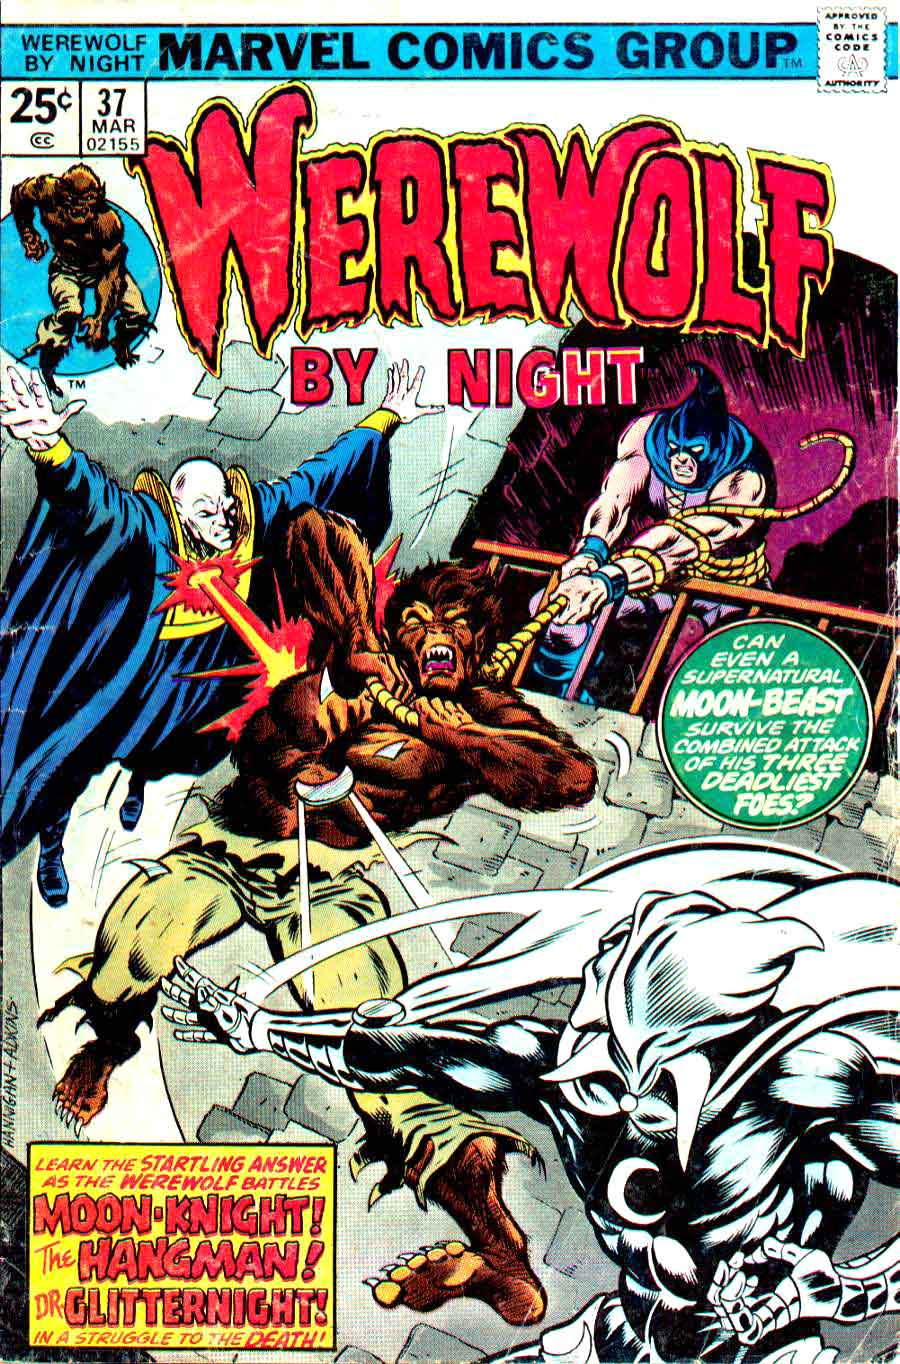 Werewolf by Night v1 #37 1970s marvel comic book cover art by Bernie Wrightson